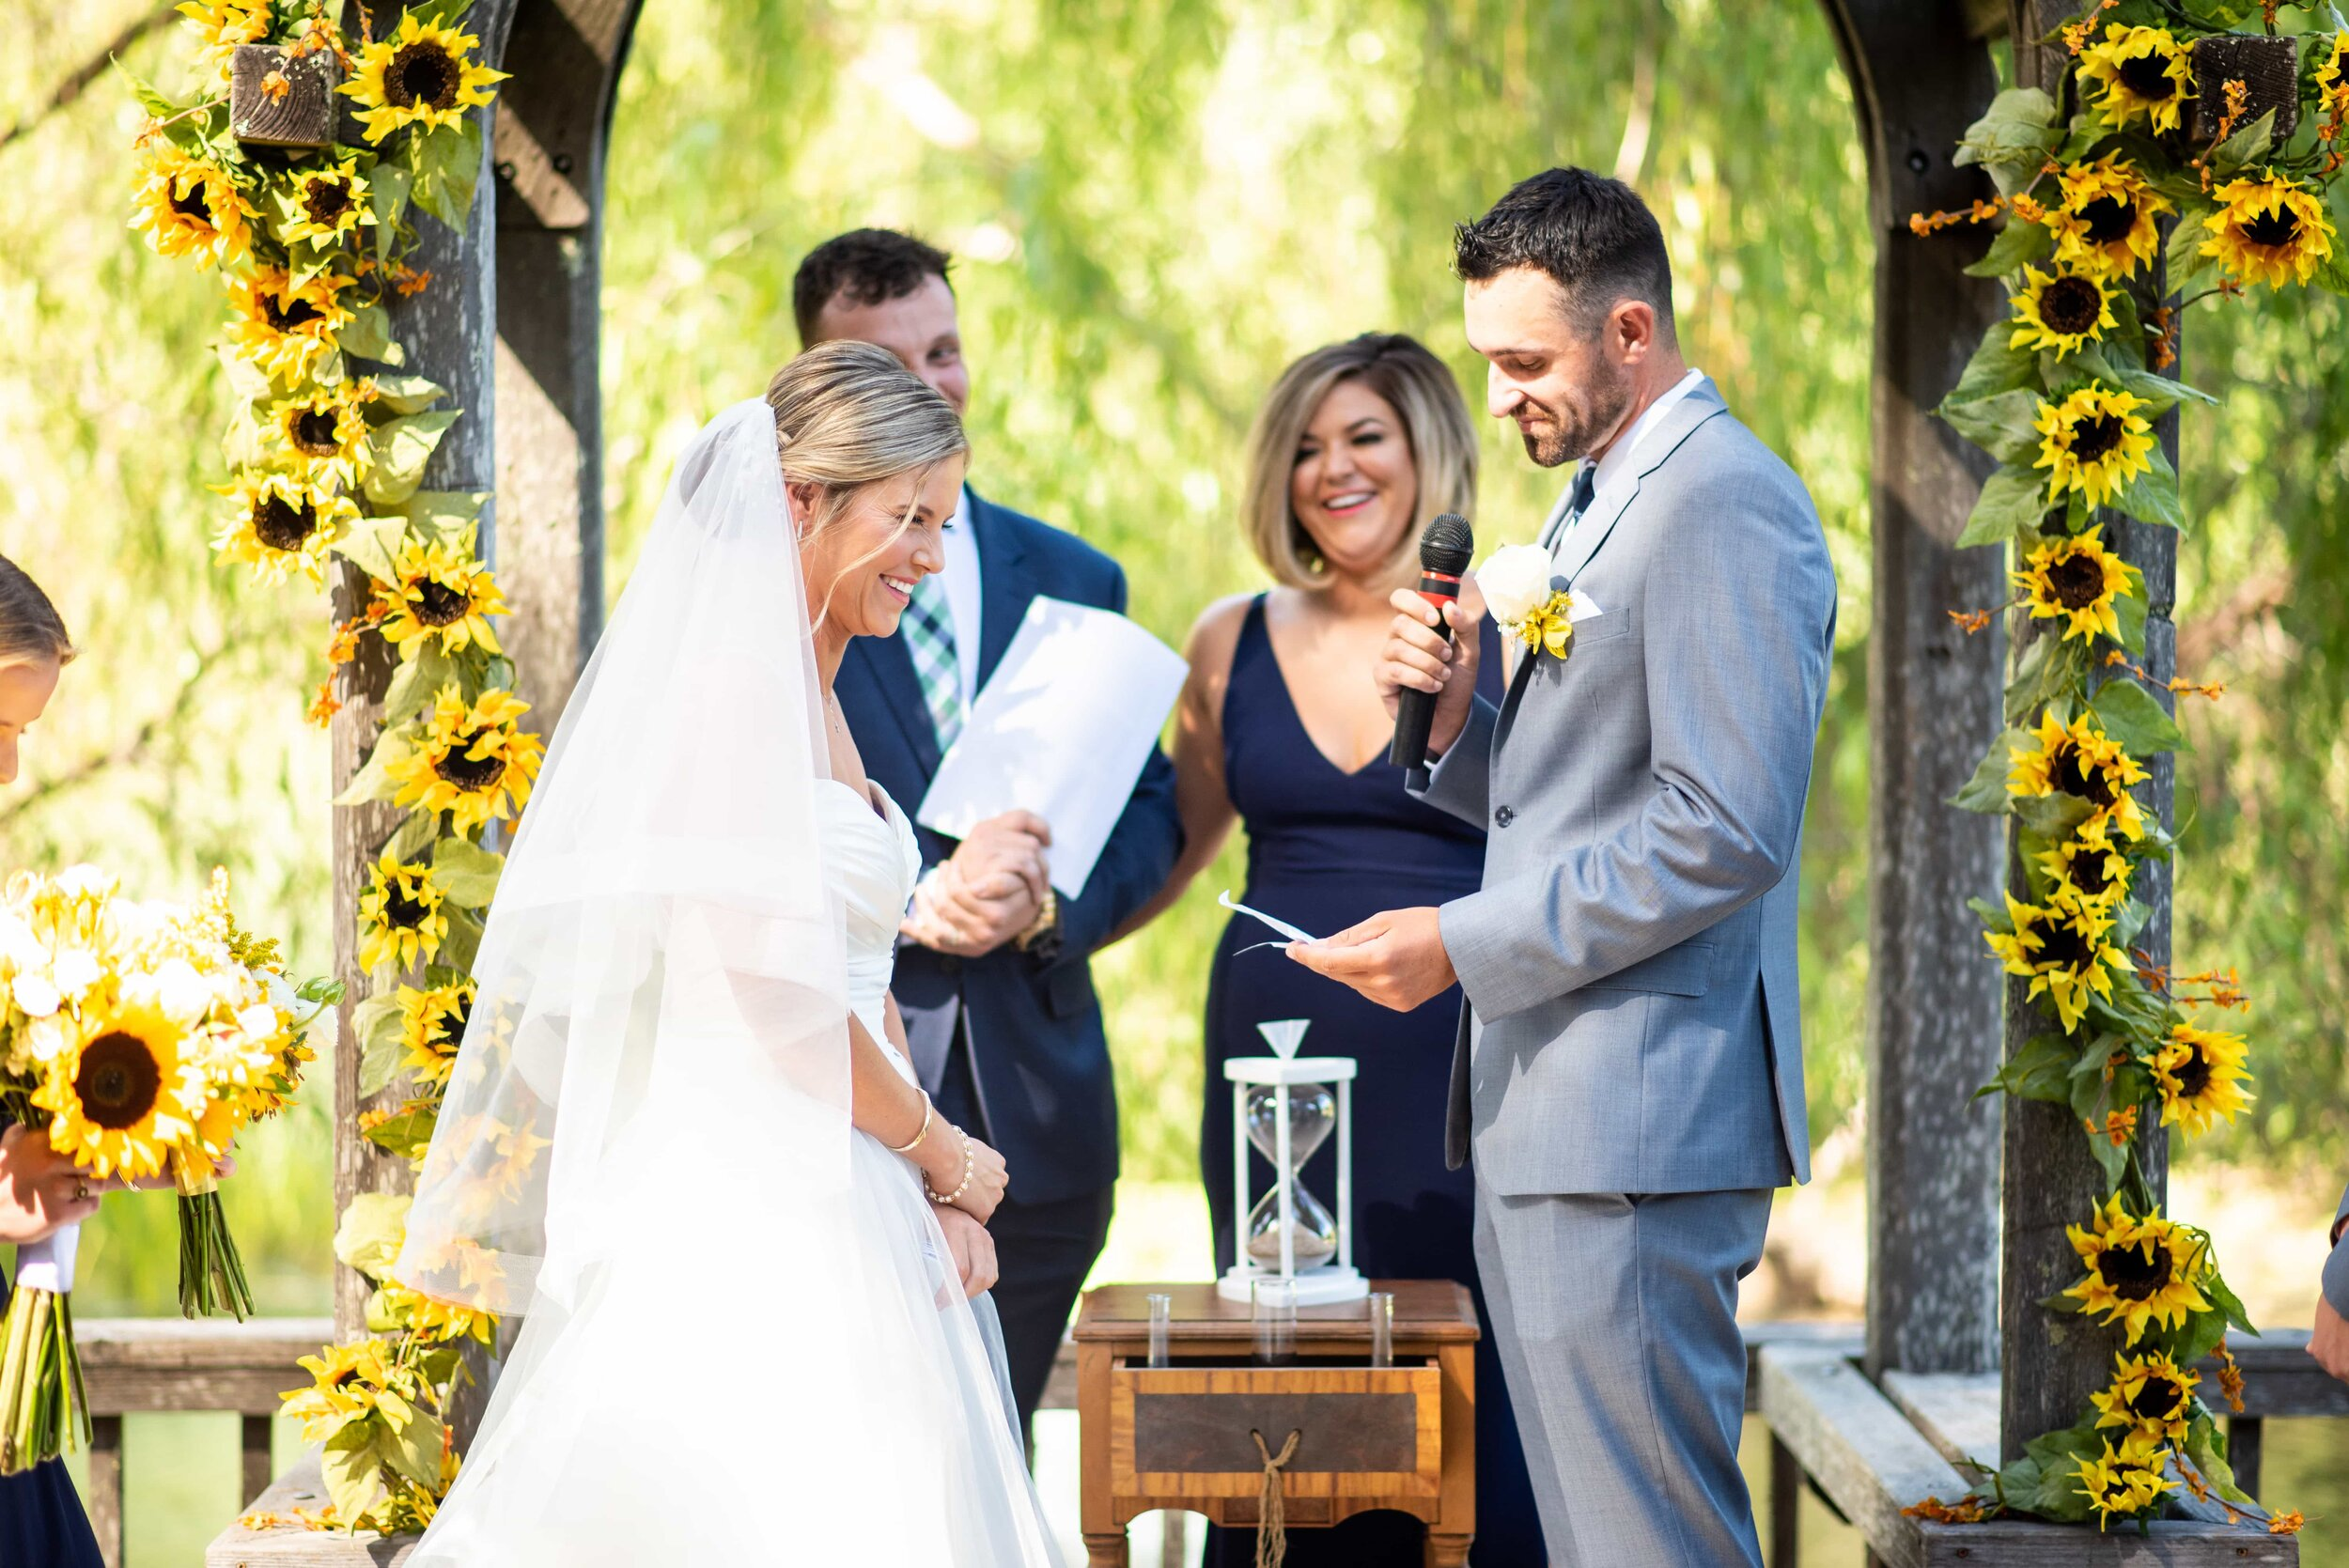 Bride and Groom in front of sunflower arch during ceremony